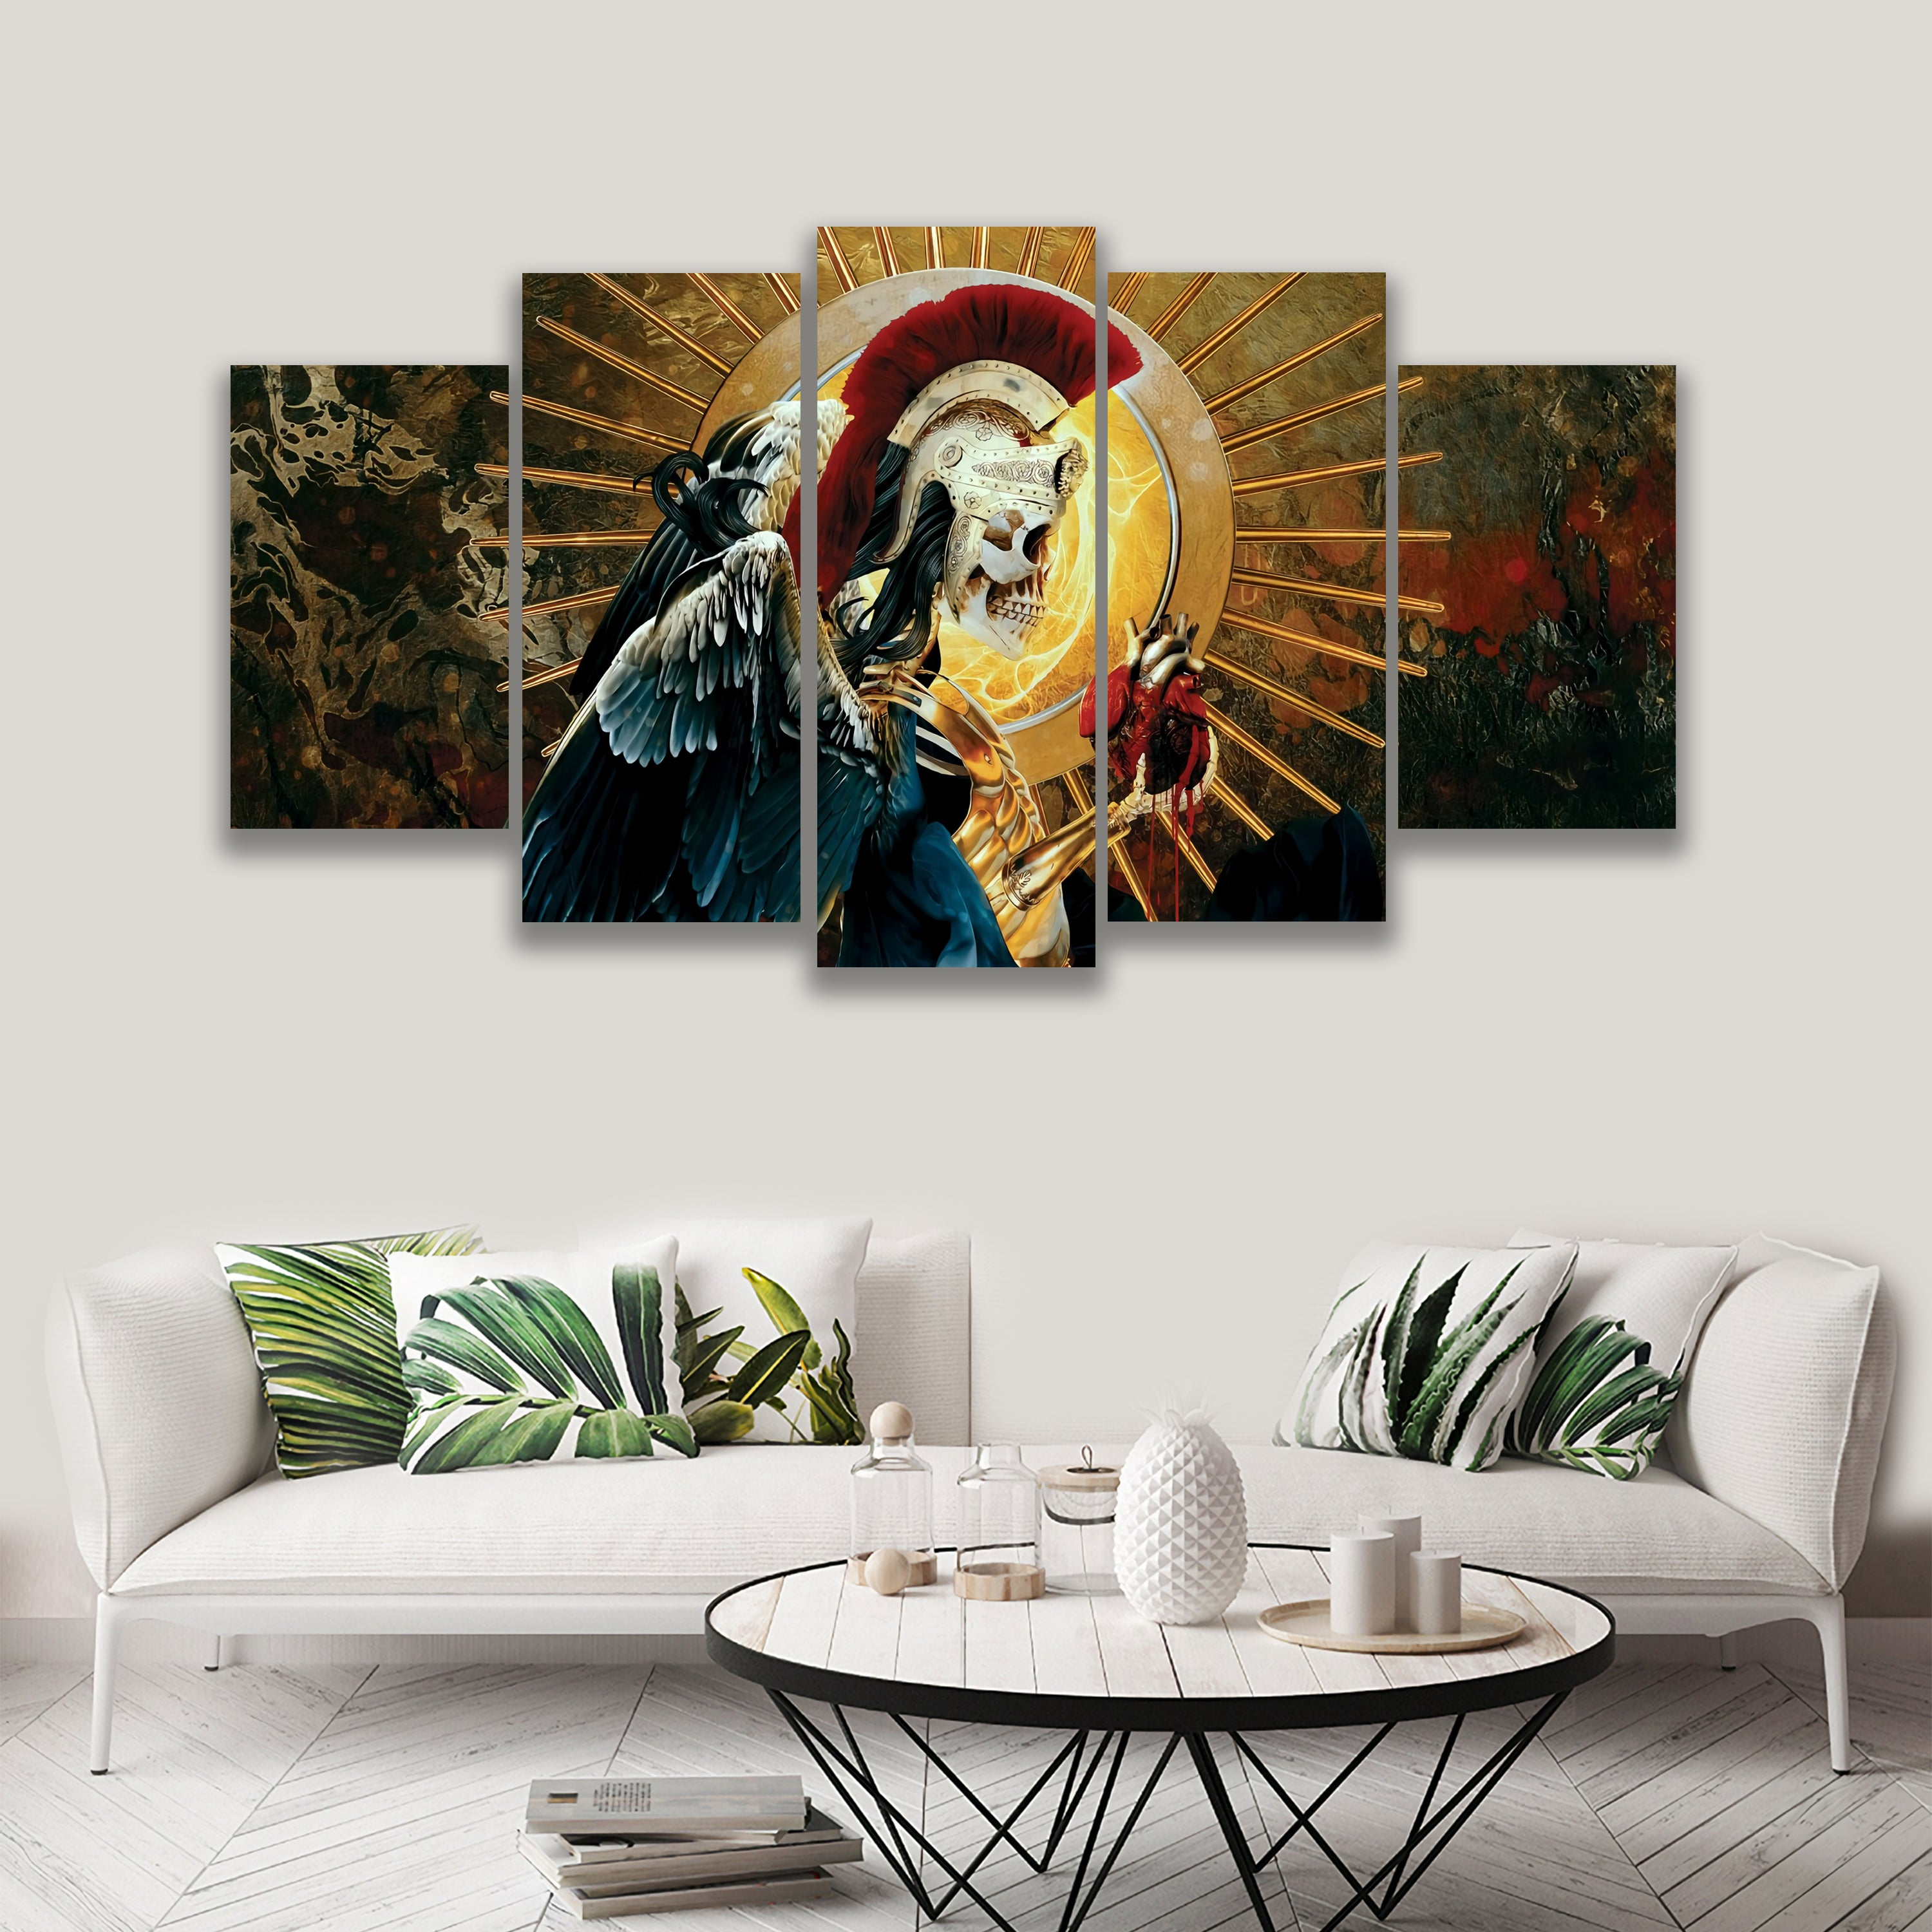 5 PANEL THE SPIRIT AND HEART ON CANVAS WALL CP003XL